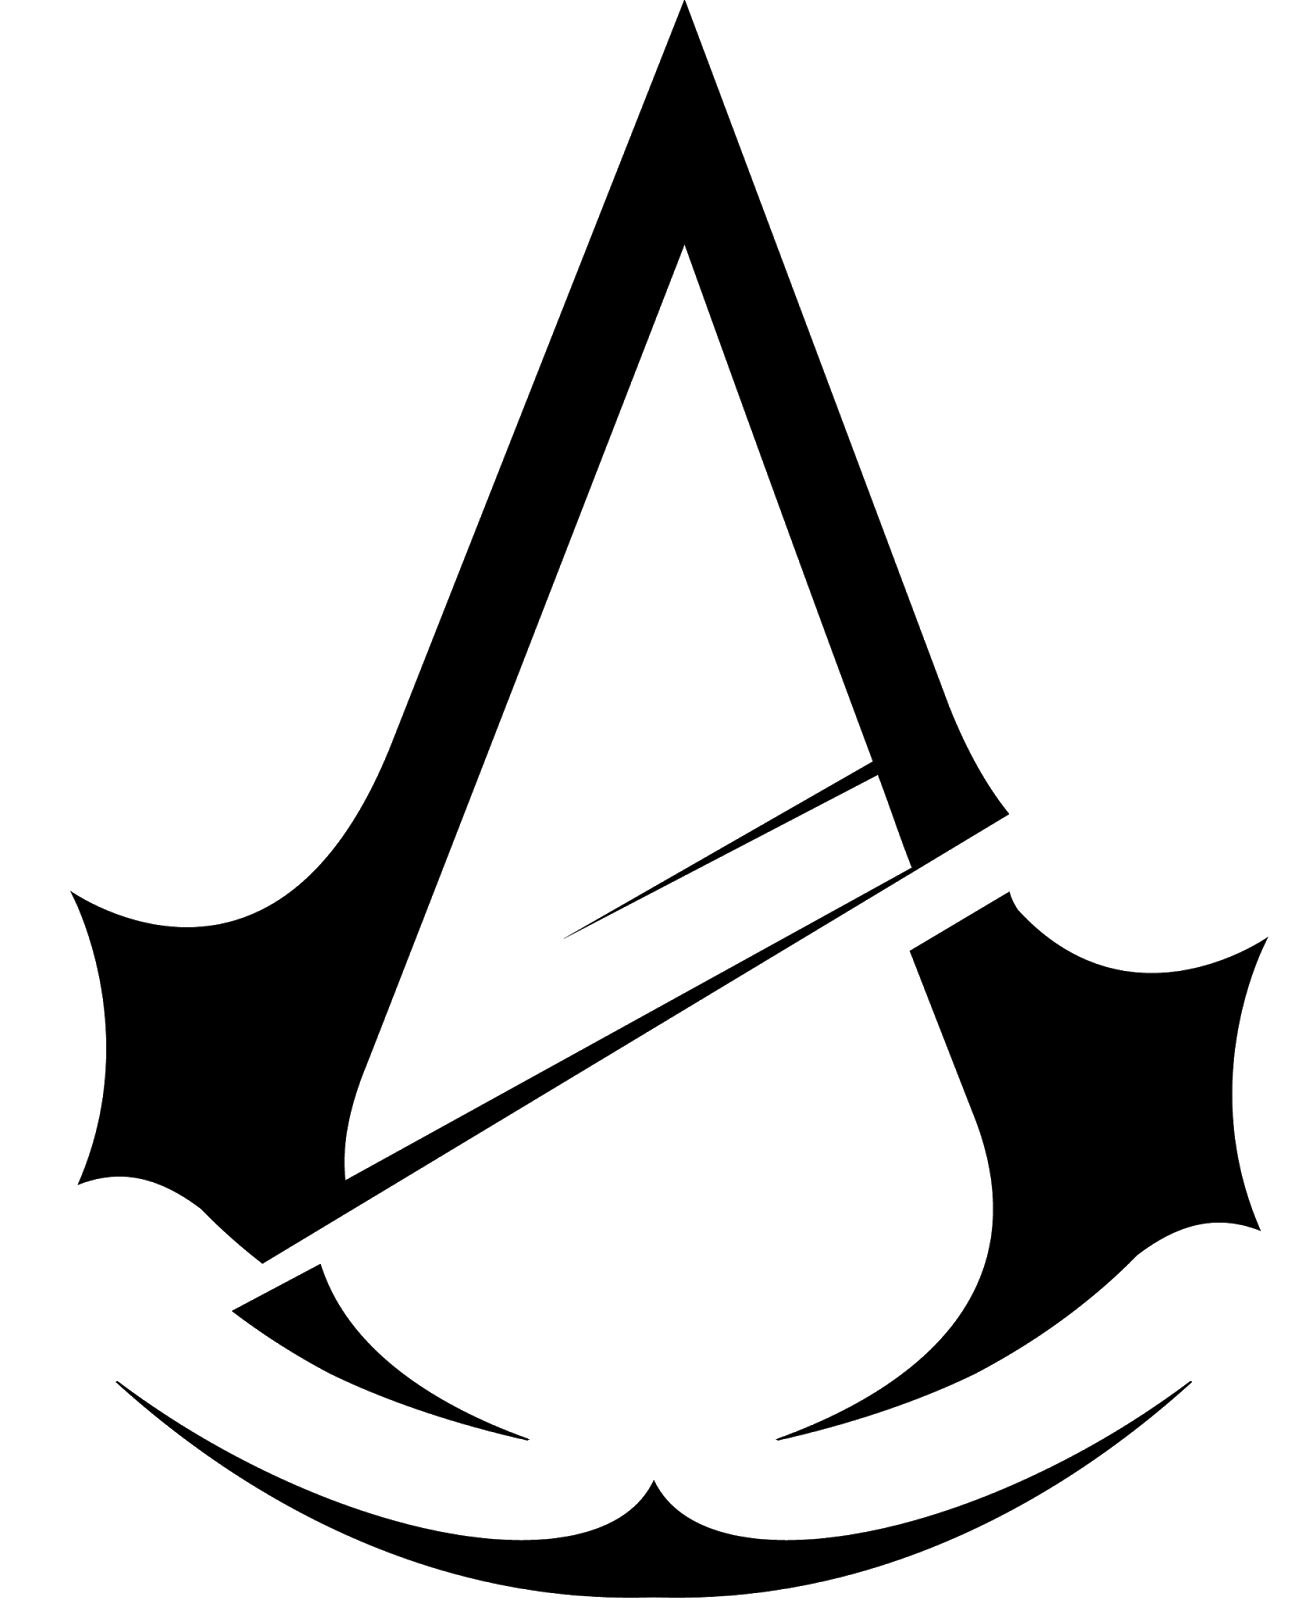 Assassin S Creed Unity Symbol Wallpapers